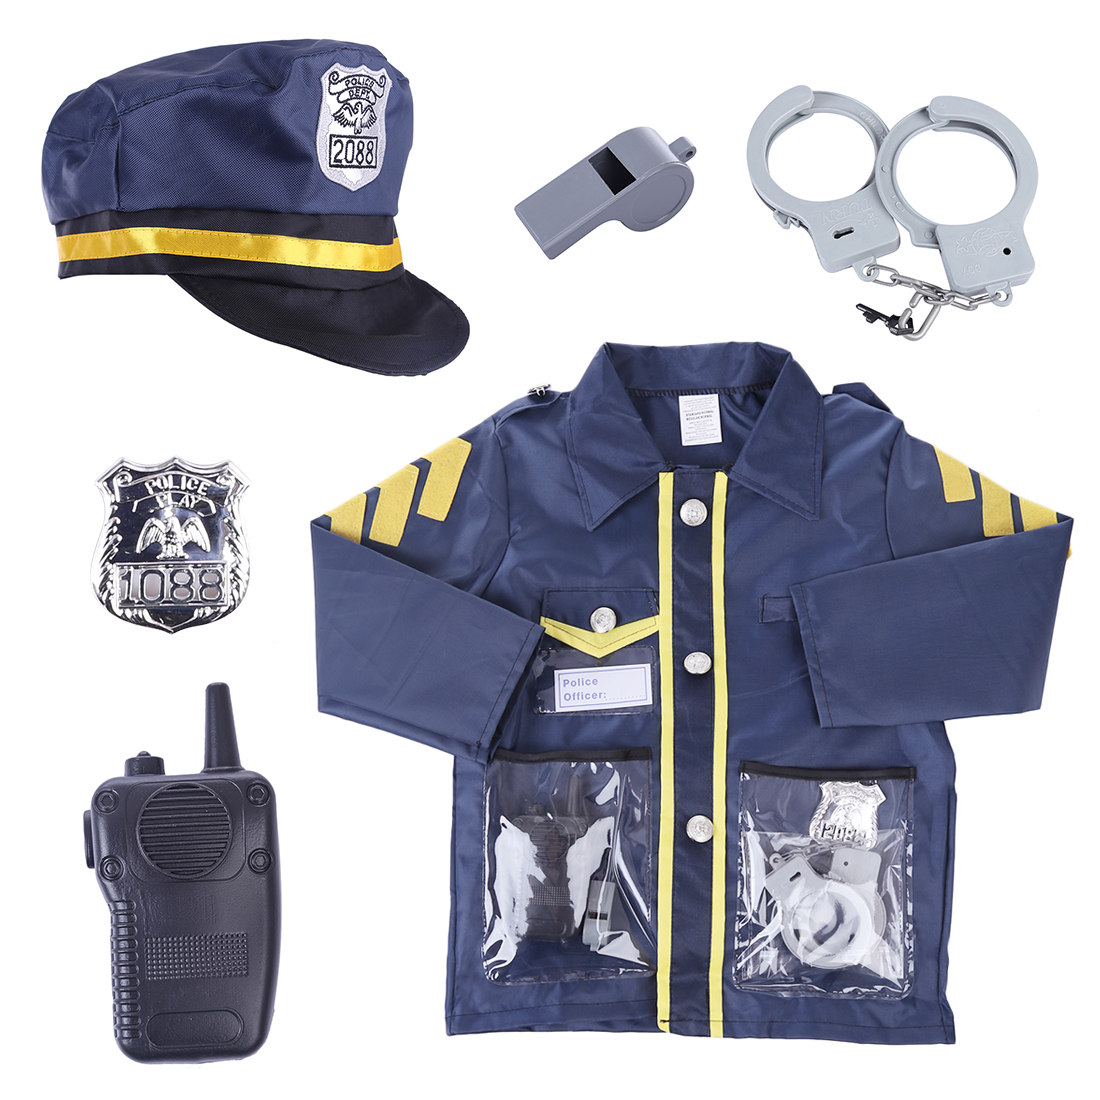 Durable 6Pcs Children Pretend Play Toys Simulation Policeman Playing Set For Boys Interest Development Role Play Kits